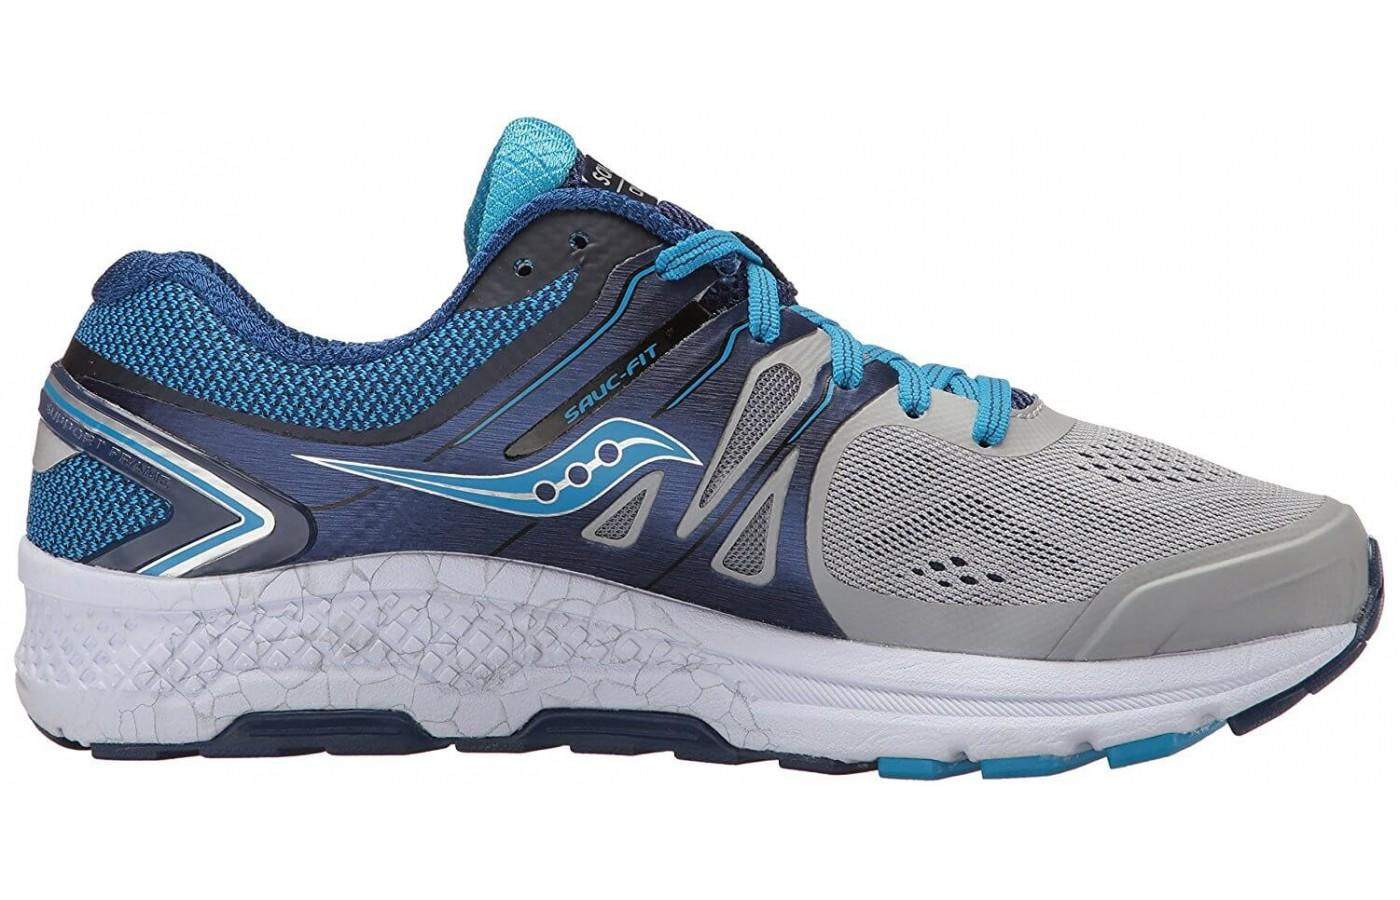 Runner love the stability features and arch support.